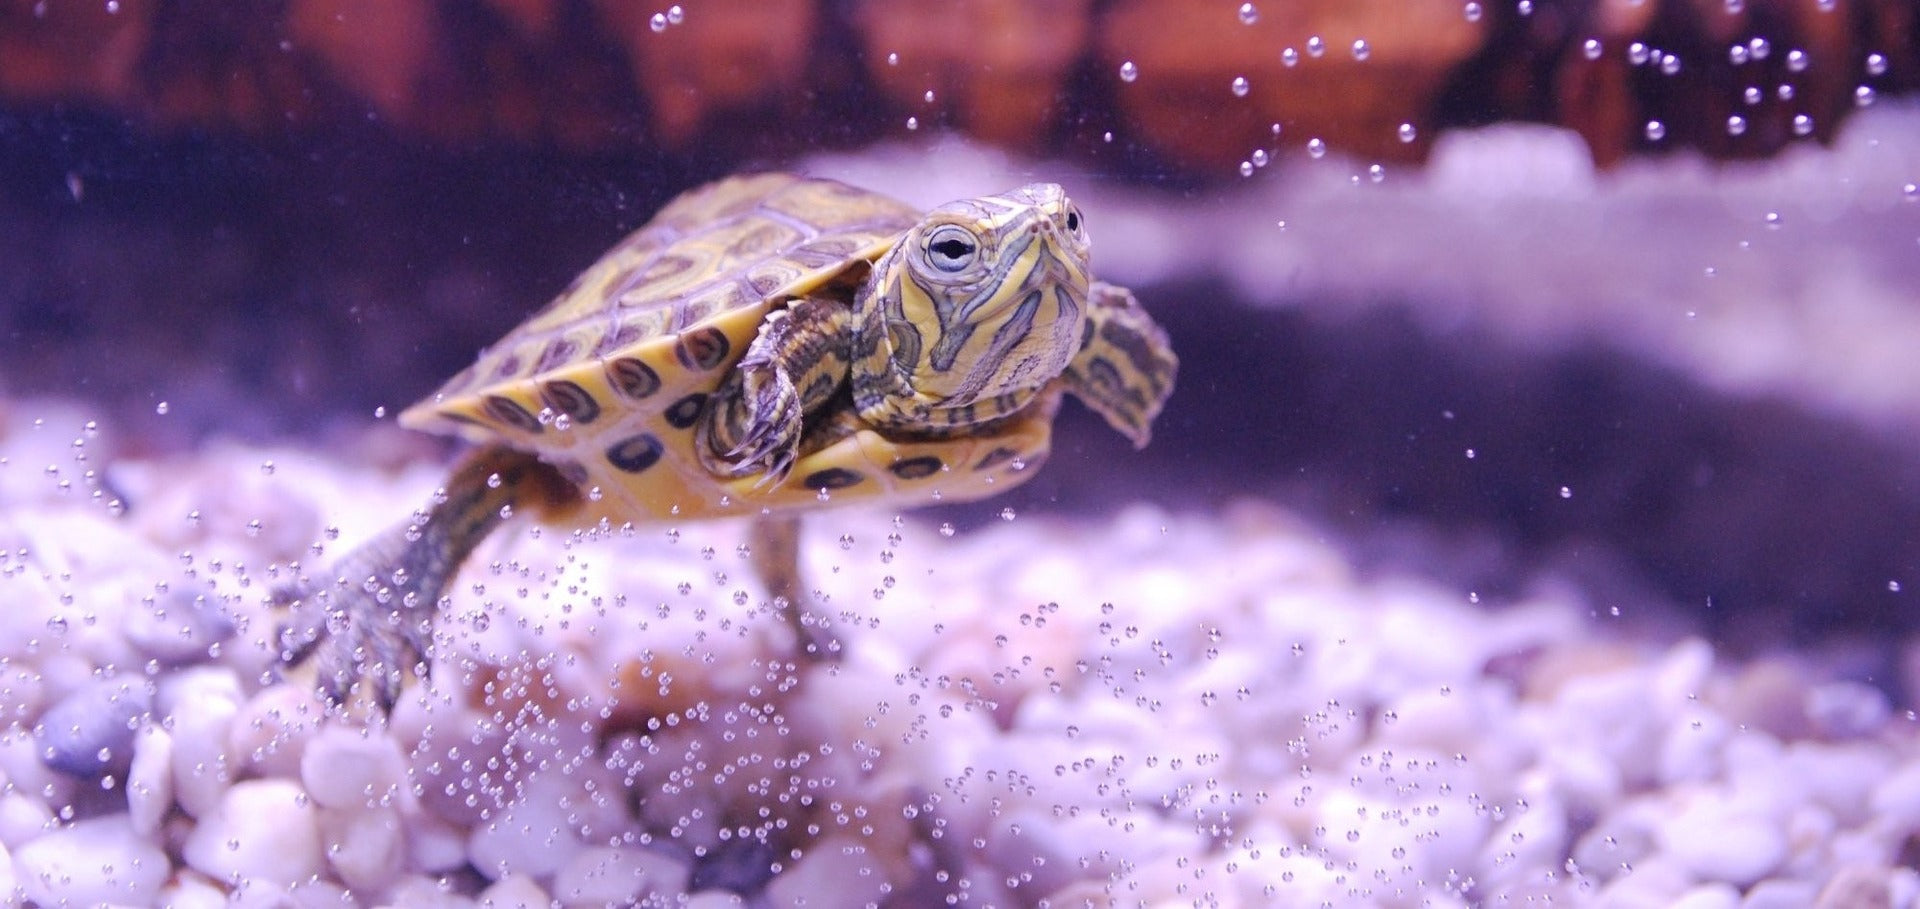 How many years do turtles live